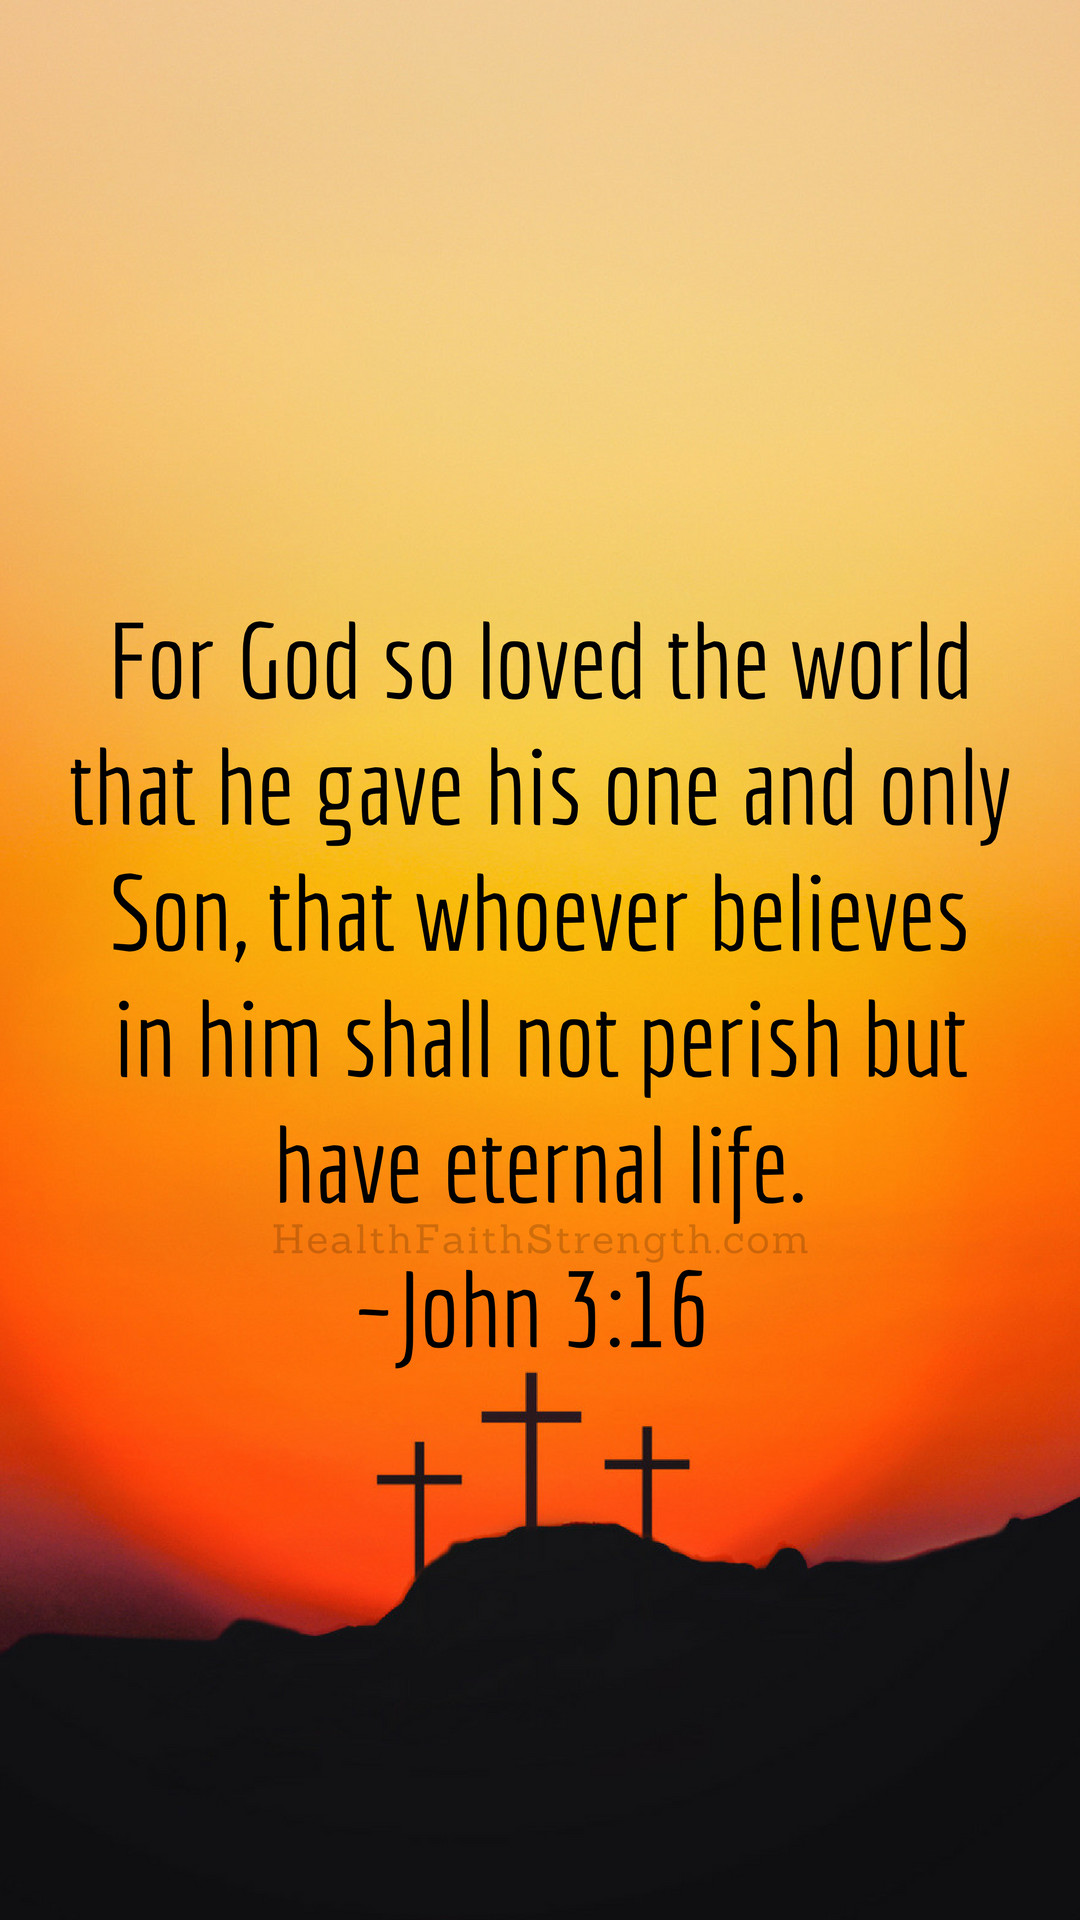 1080x1920 Downloadable Bible Verse Wallpapers for iPhone